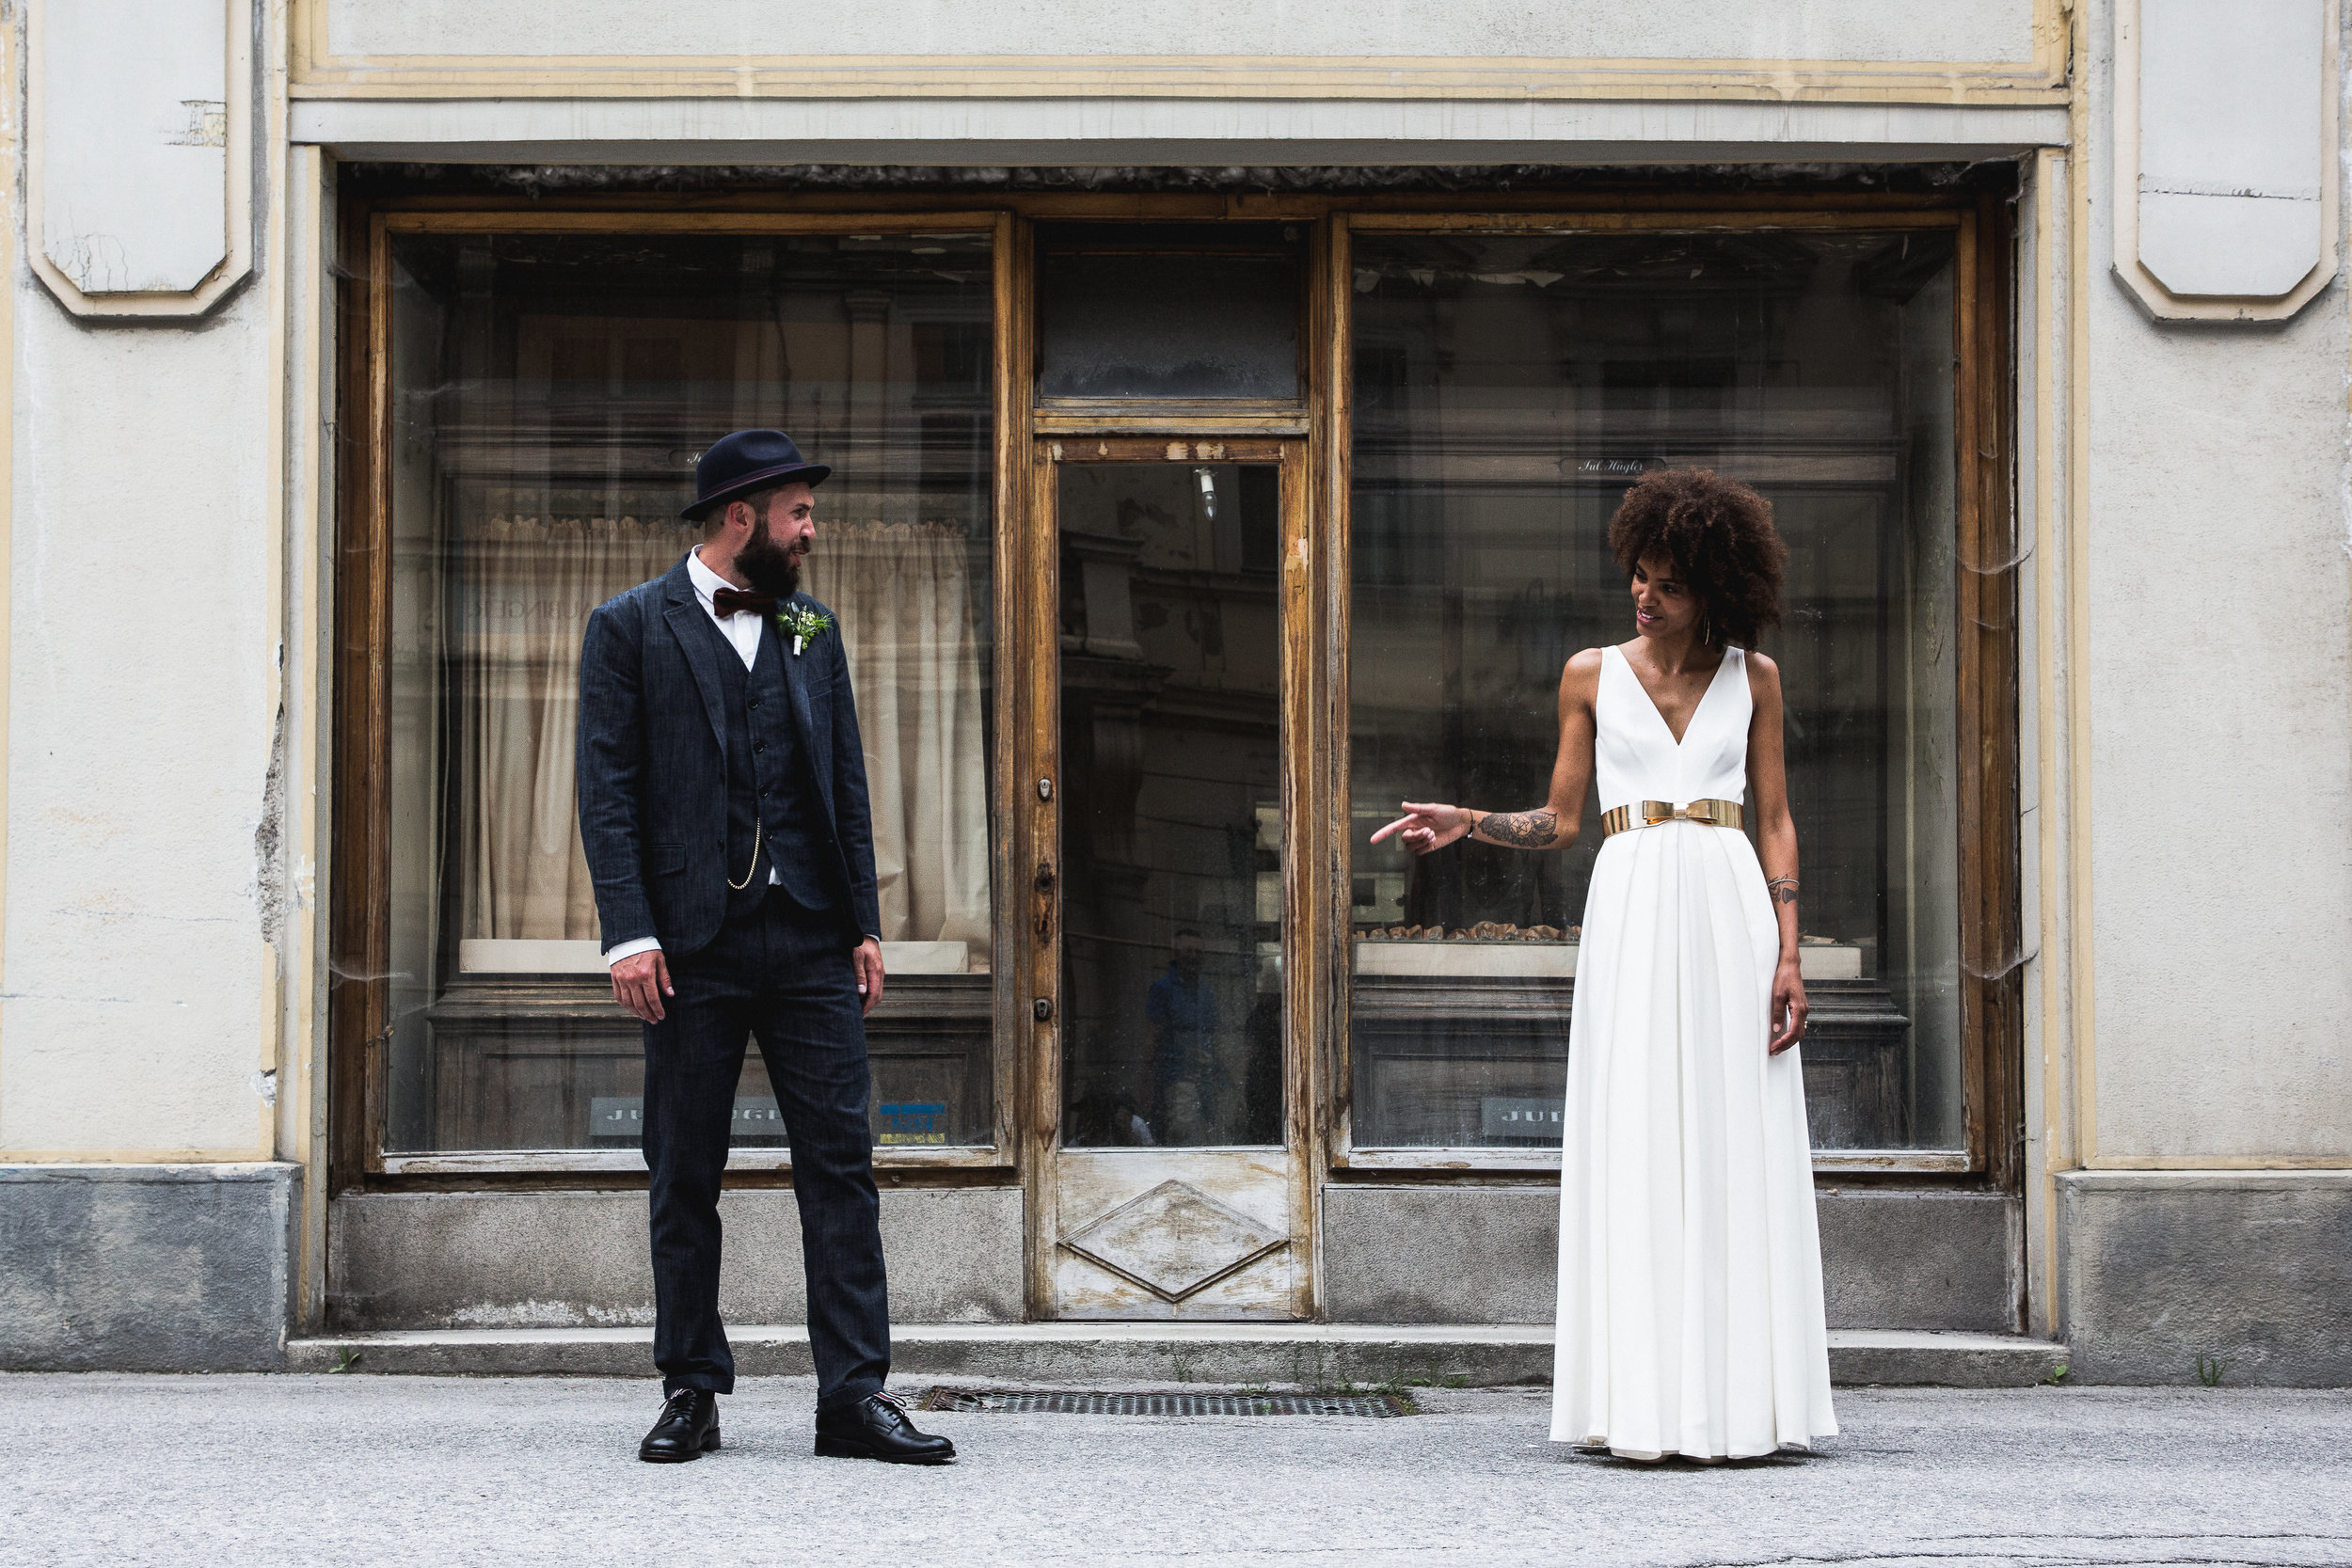 getting married stylish in Bad Gastein